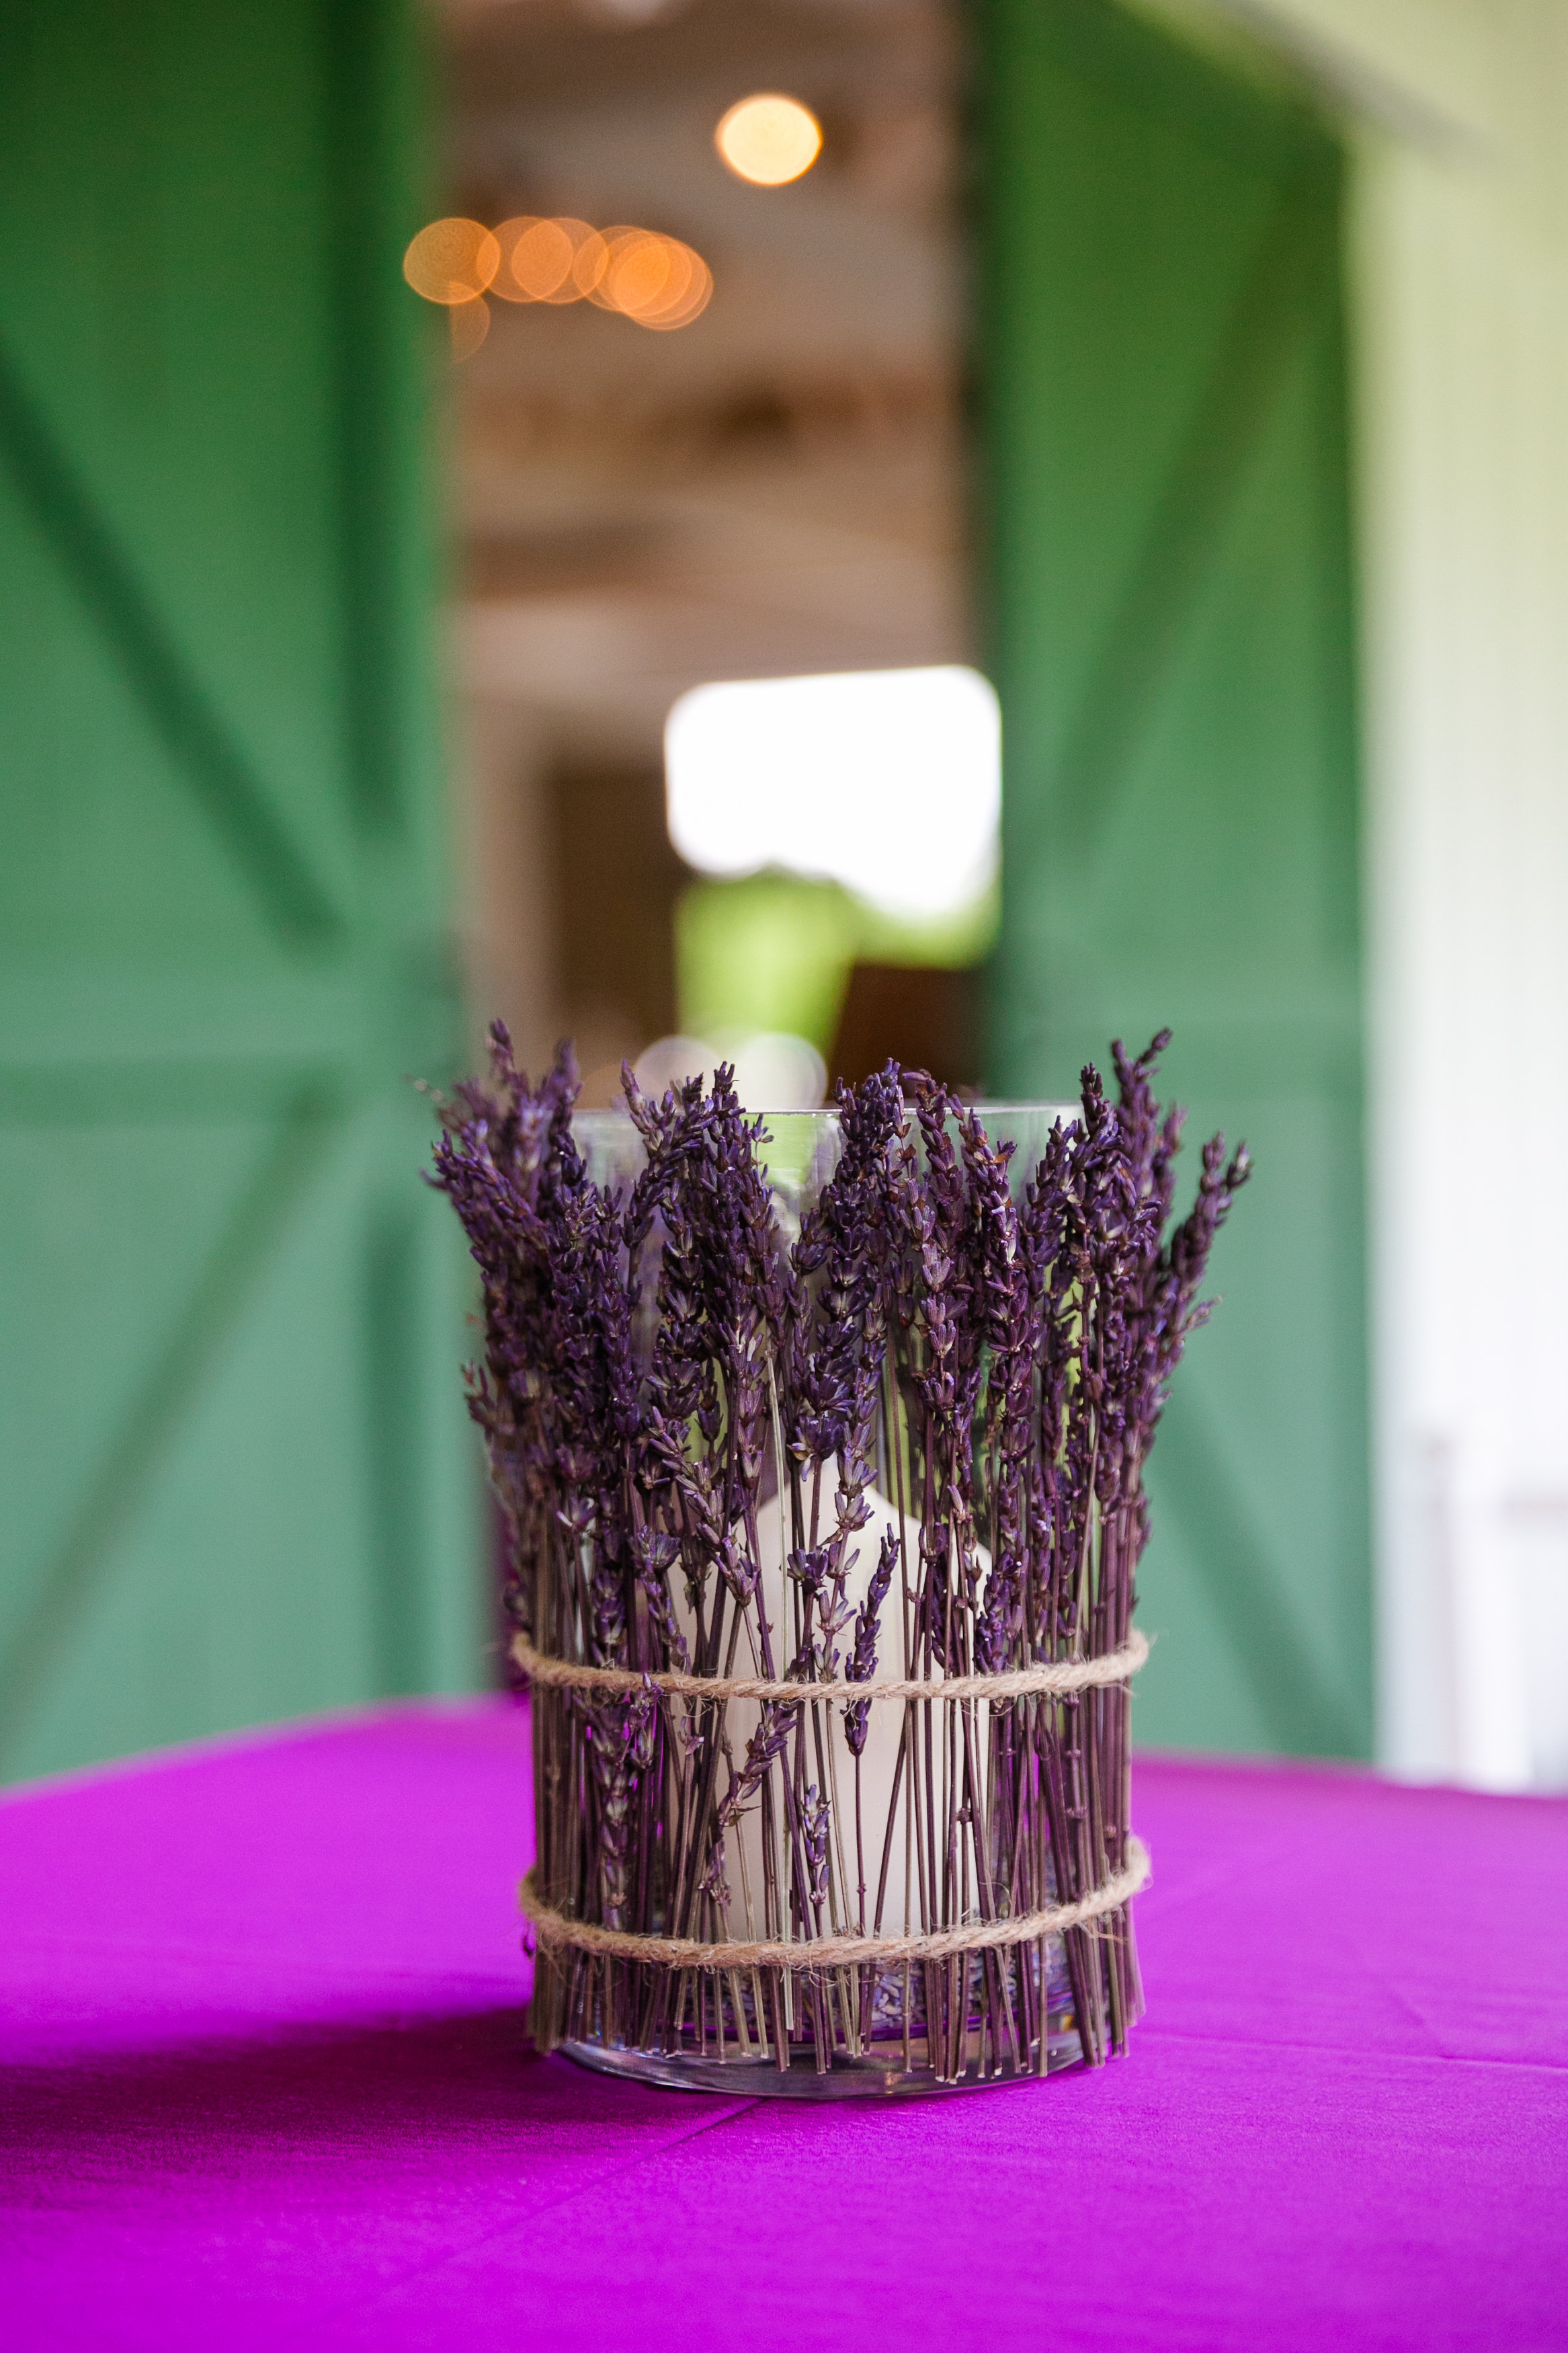 lavender-candle-centerpieces-wedding-reception-barn-decor-rustic-chic-sweetgrass-social-wildberry-farm-dana-cubbage